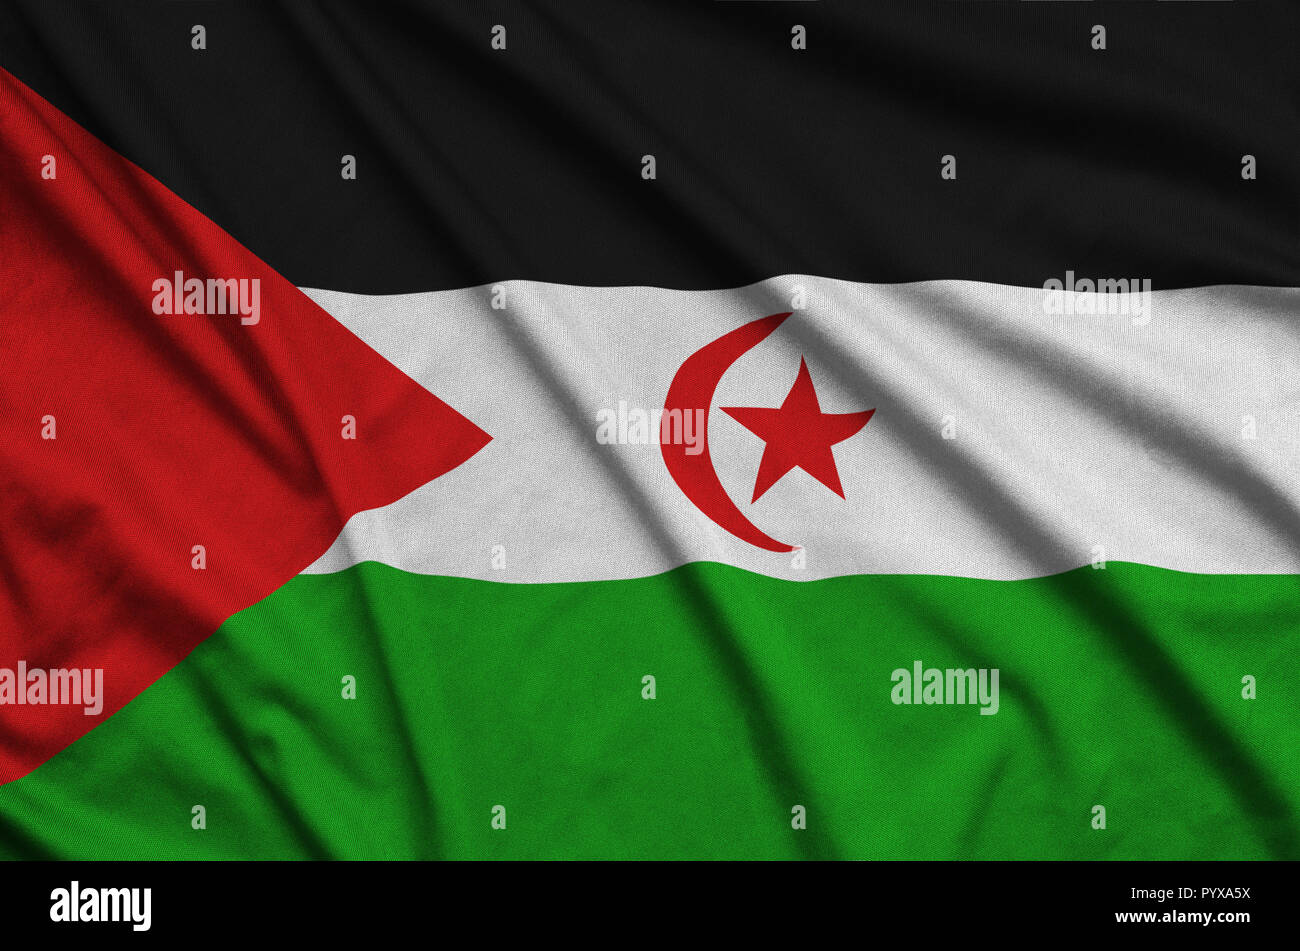 Western Sahara flag  is depicted on a sports cloth fabric with many folds. Sport team waving banner - Stock Image